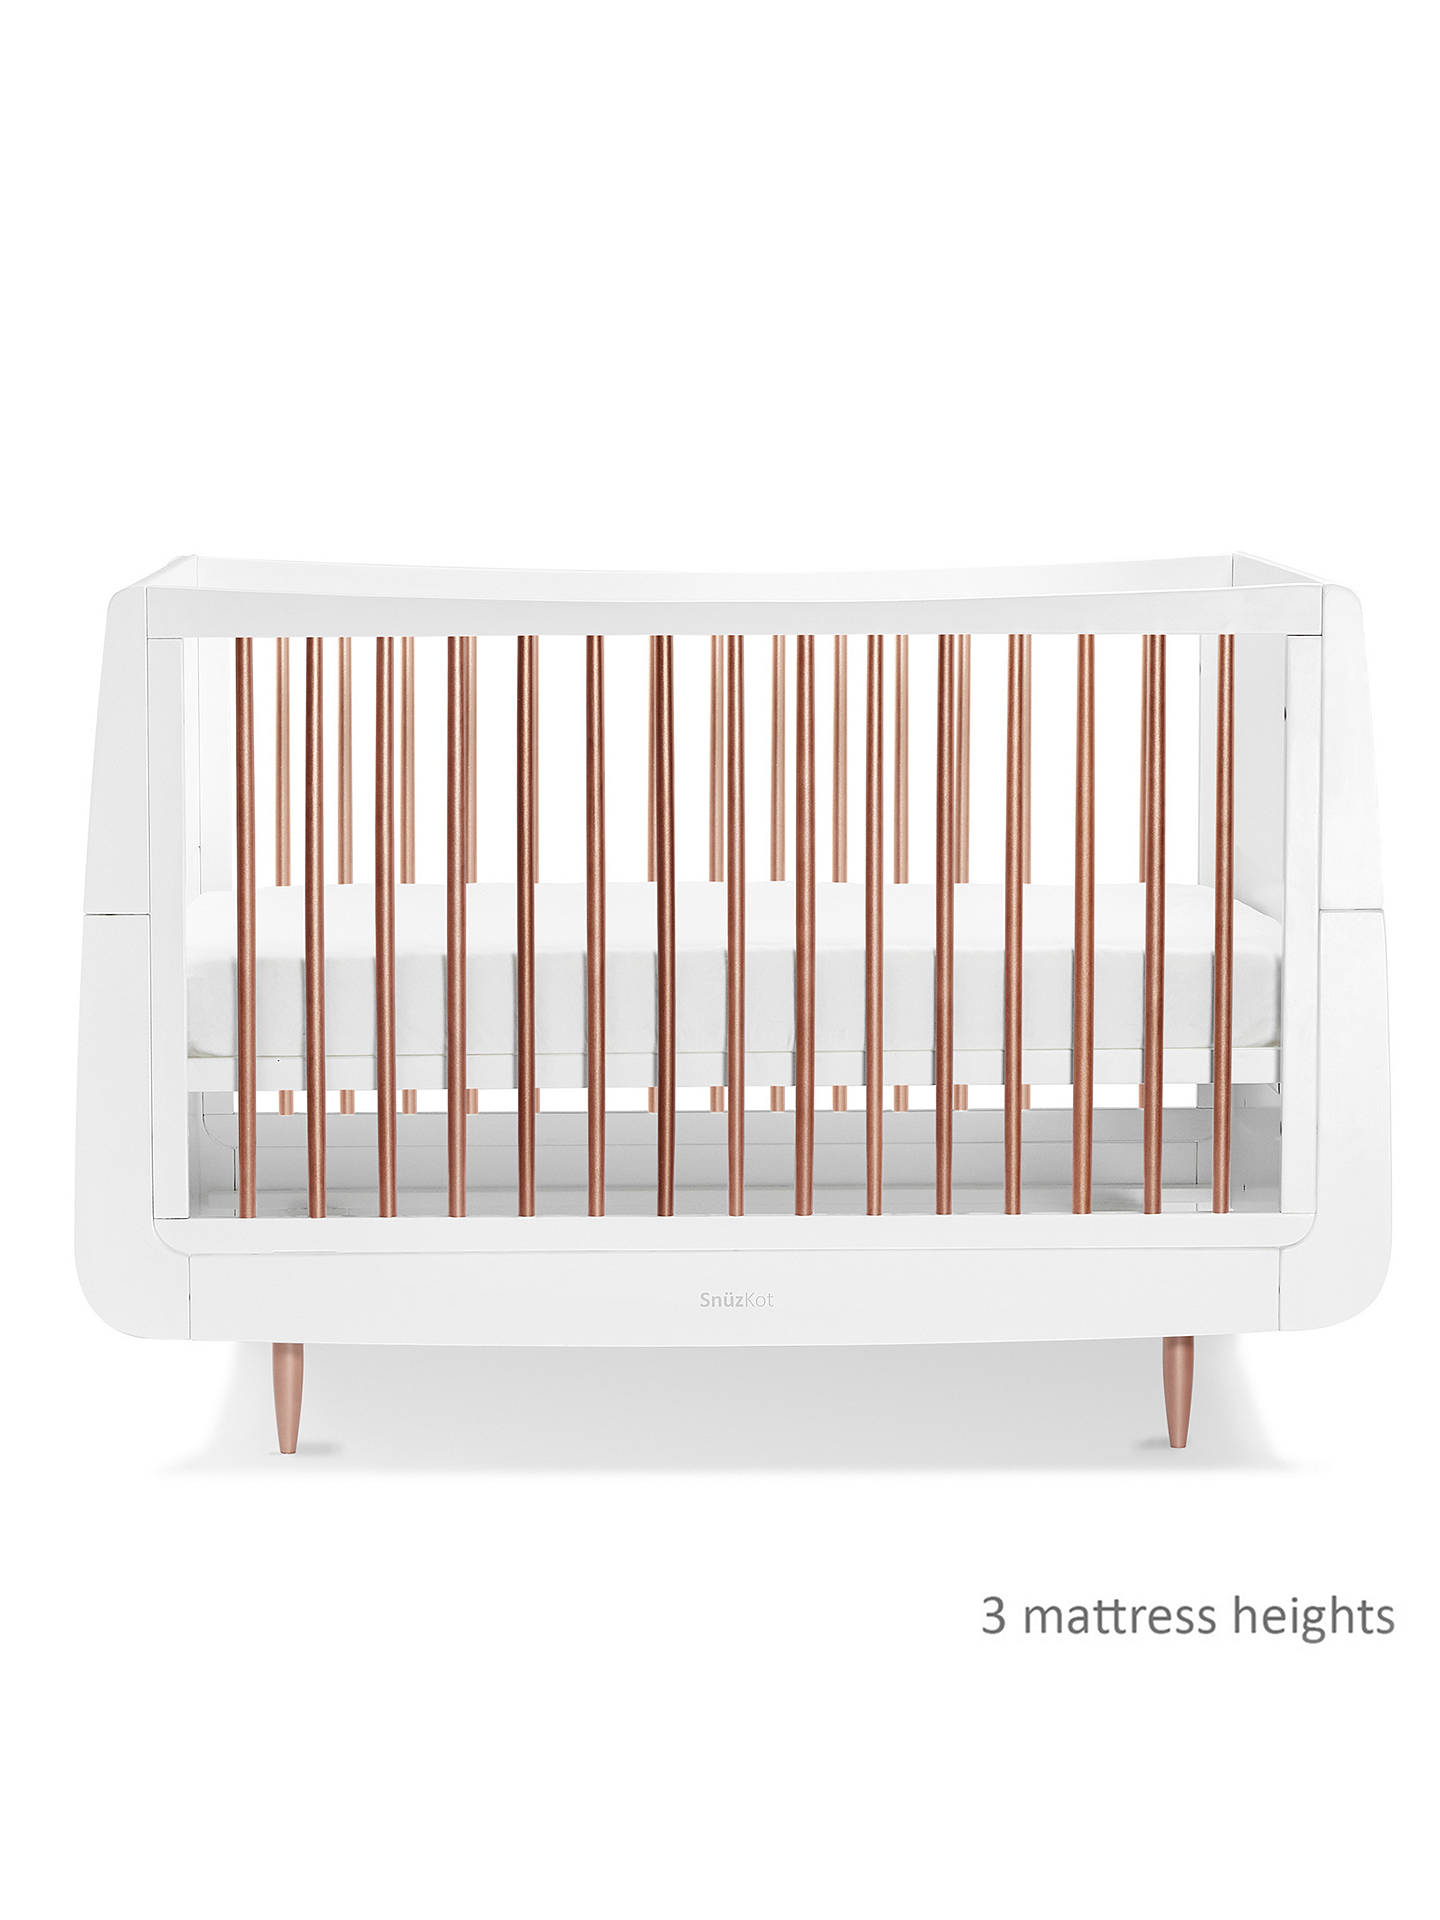 Buy Snüz Snüzkot Metallic Cotbed, Rose Gold/White Online at johnlewis.com